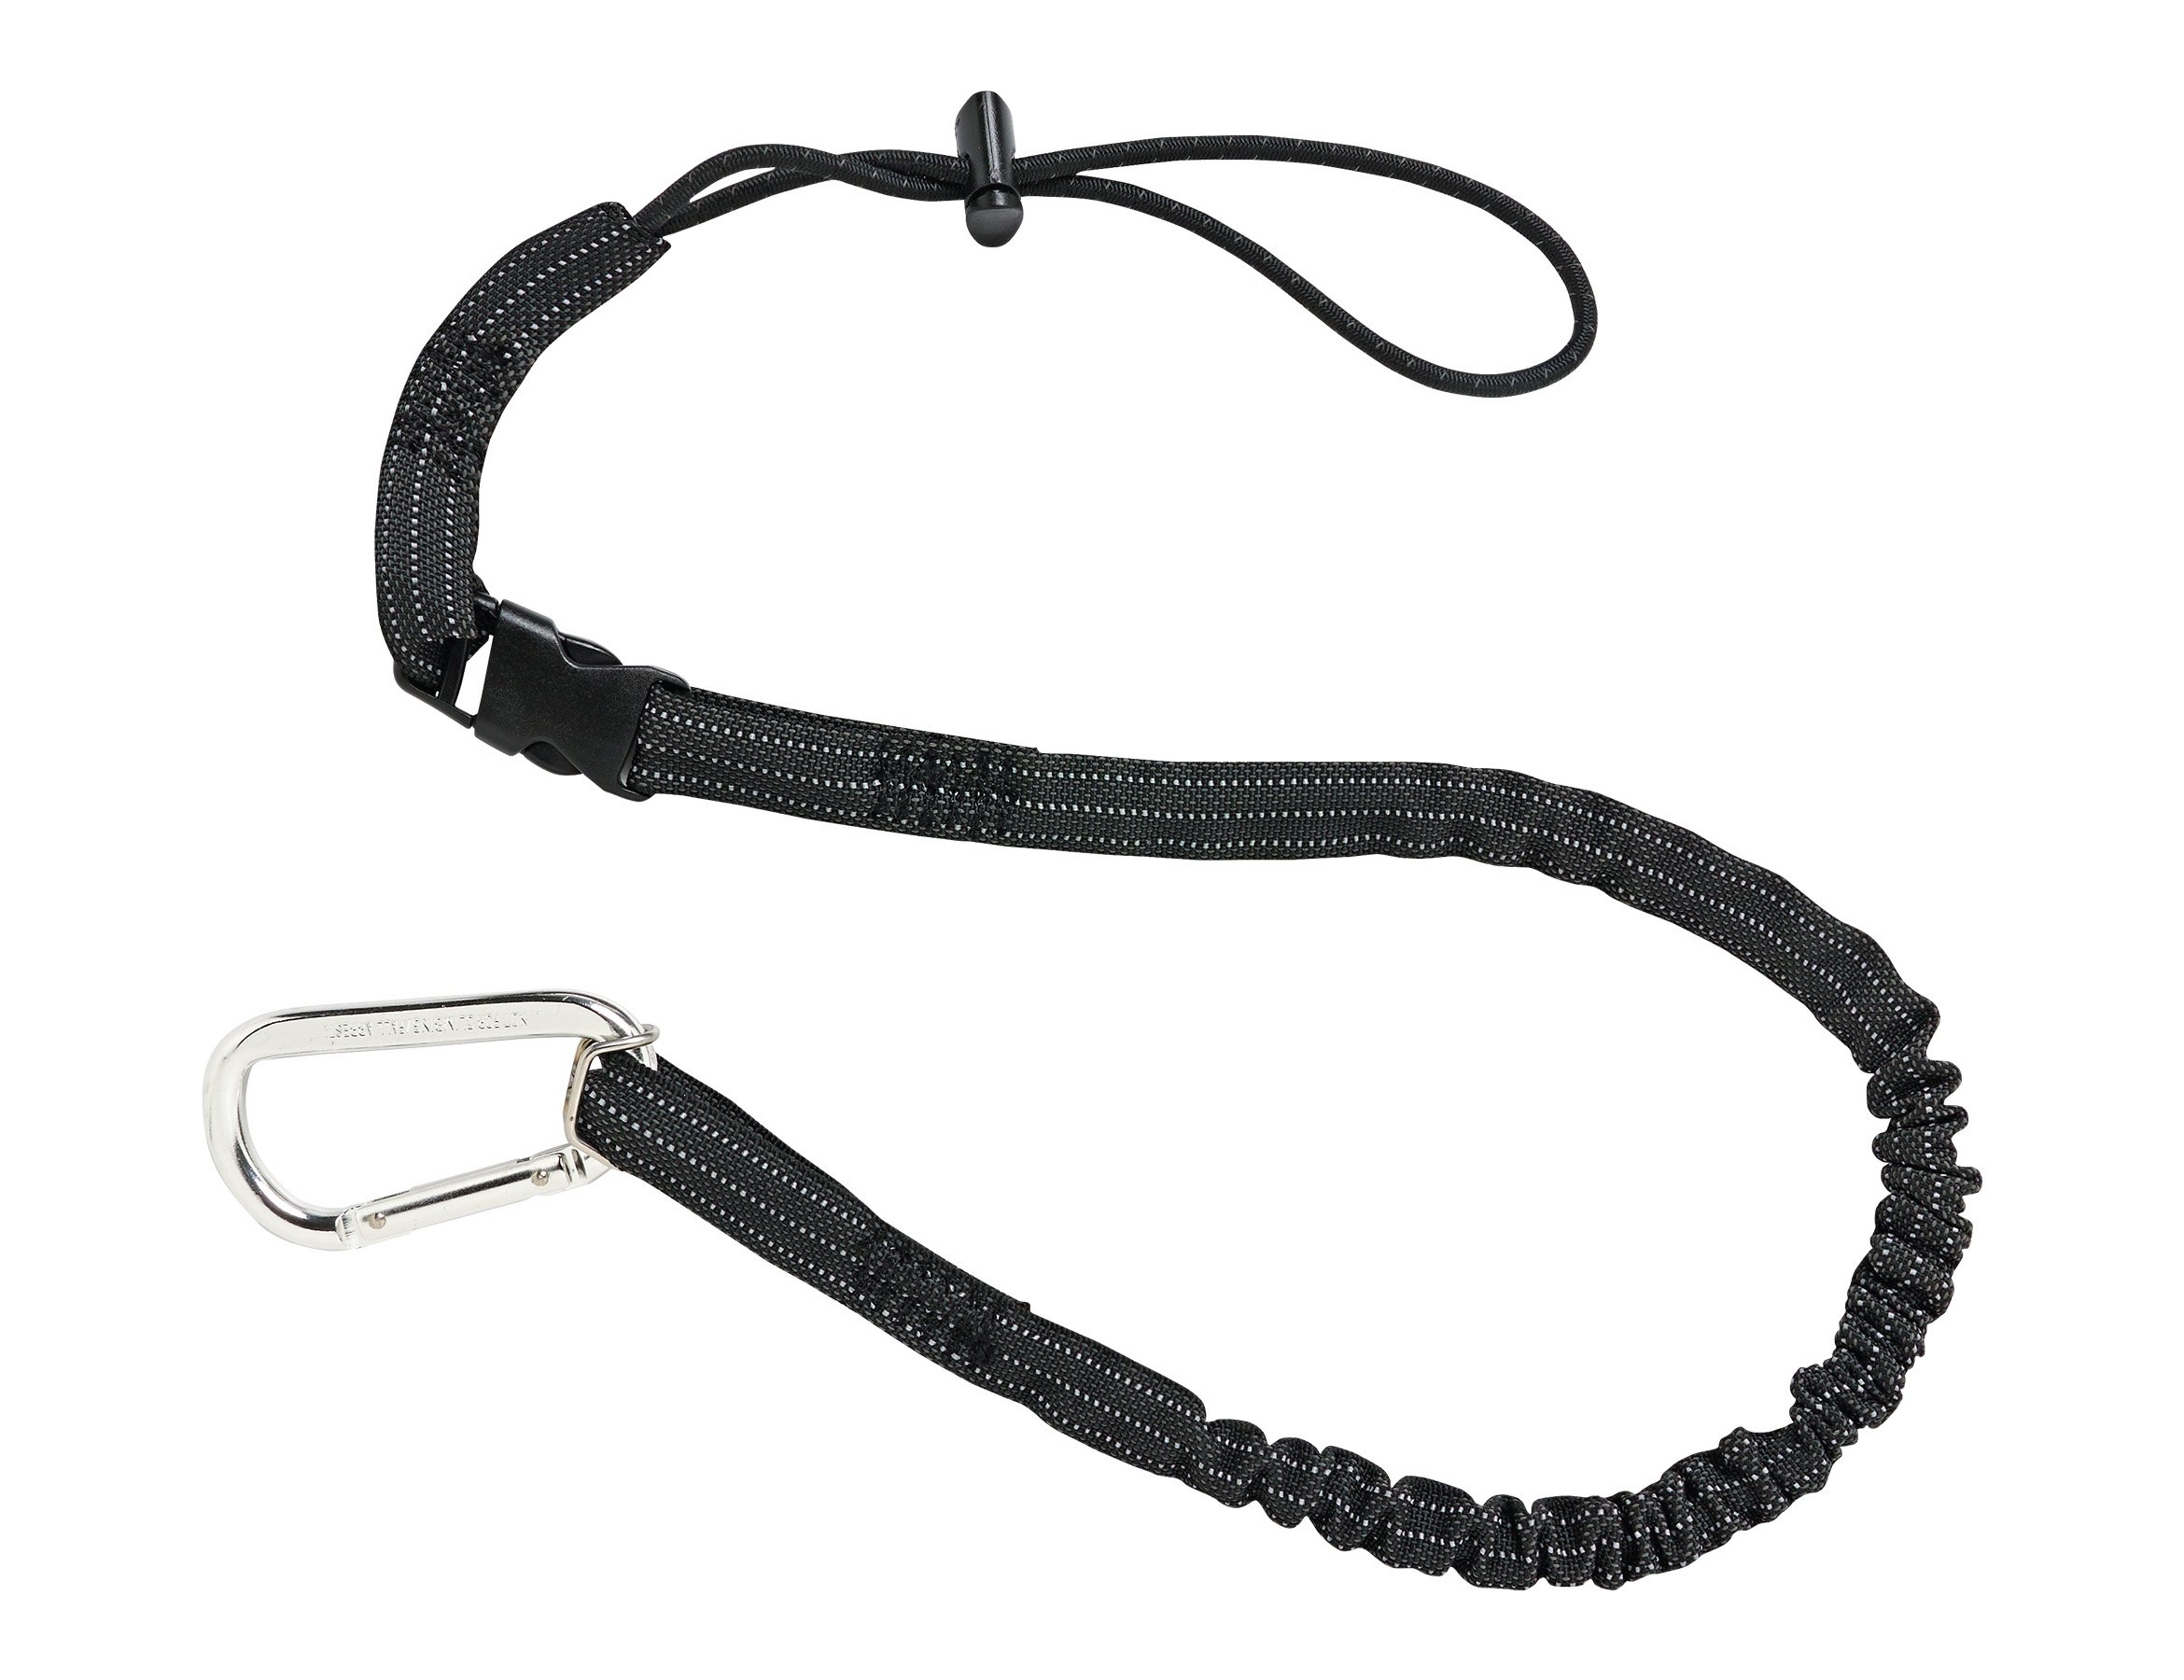 Ergodyne Squids 3102 Tool Lanyard with Single Carabiner and Detachable Adjustable Loop End, Standard Length, Black, 5 Pounds